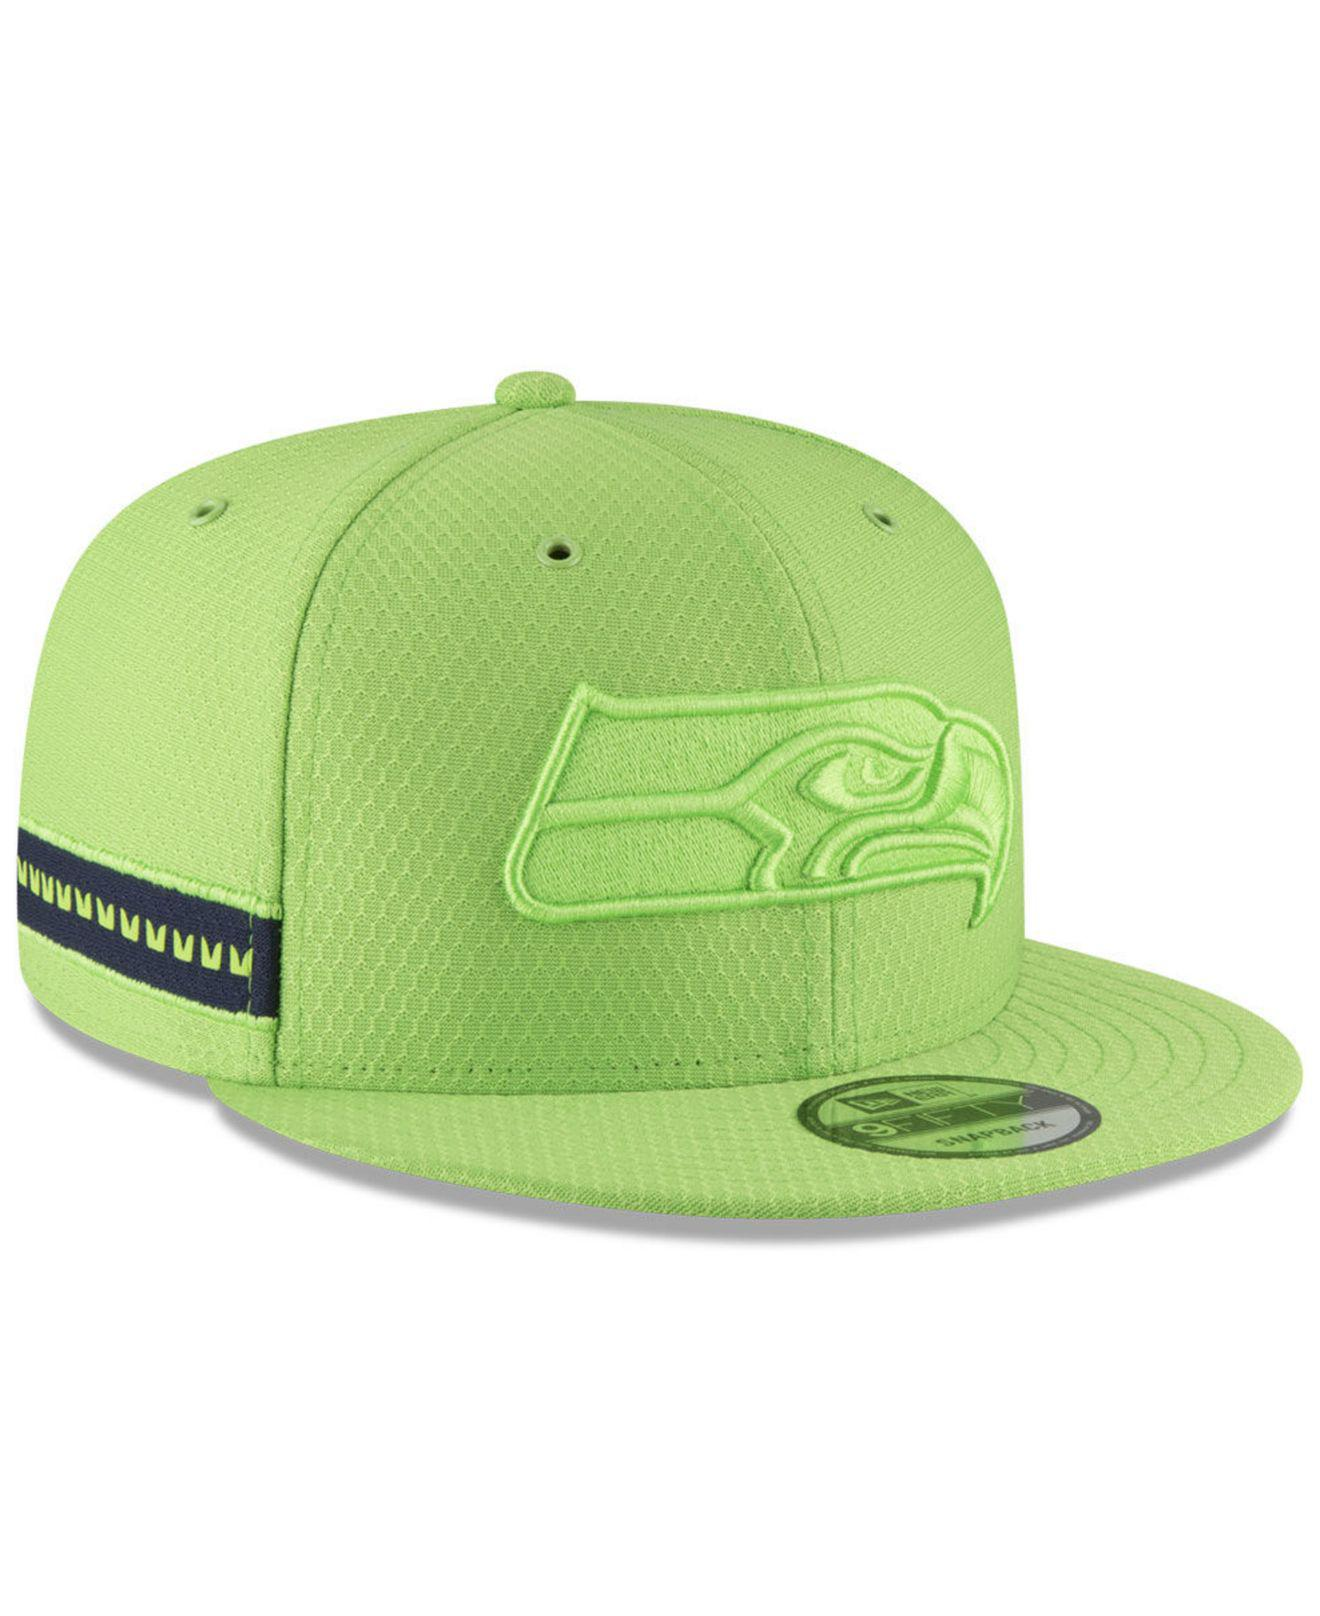 2cc858bacb4073 KTZ Seattle Seahawks On Field Color Rush 9fifty Snapback Cap in ...